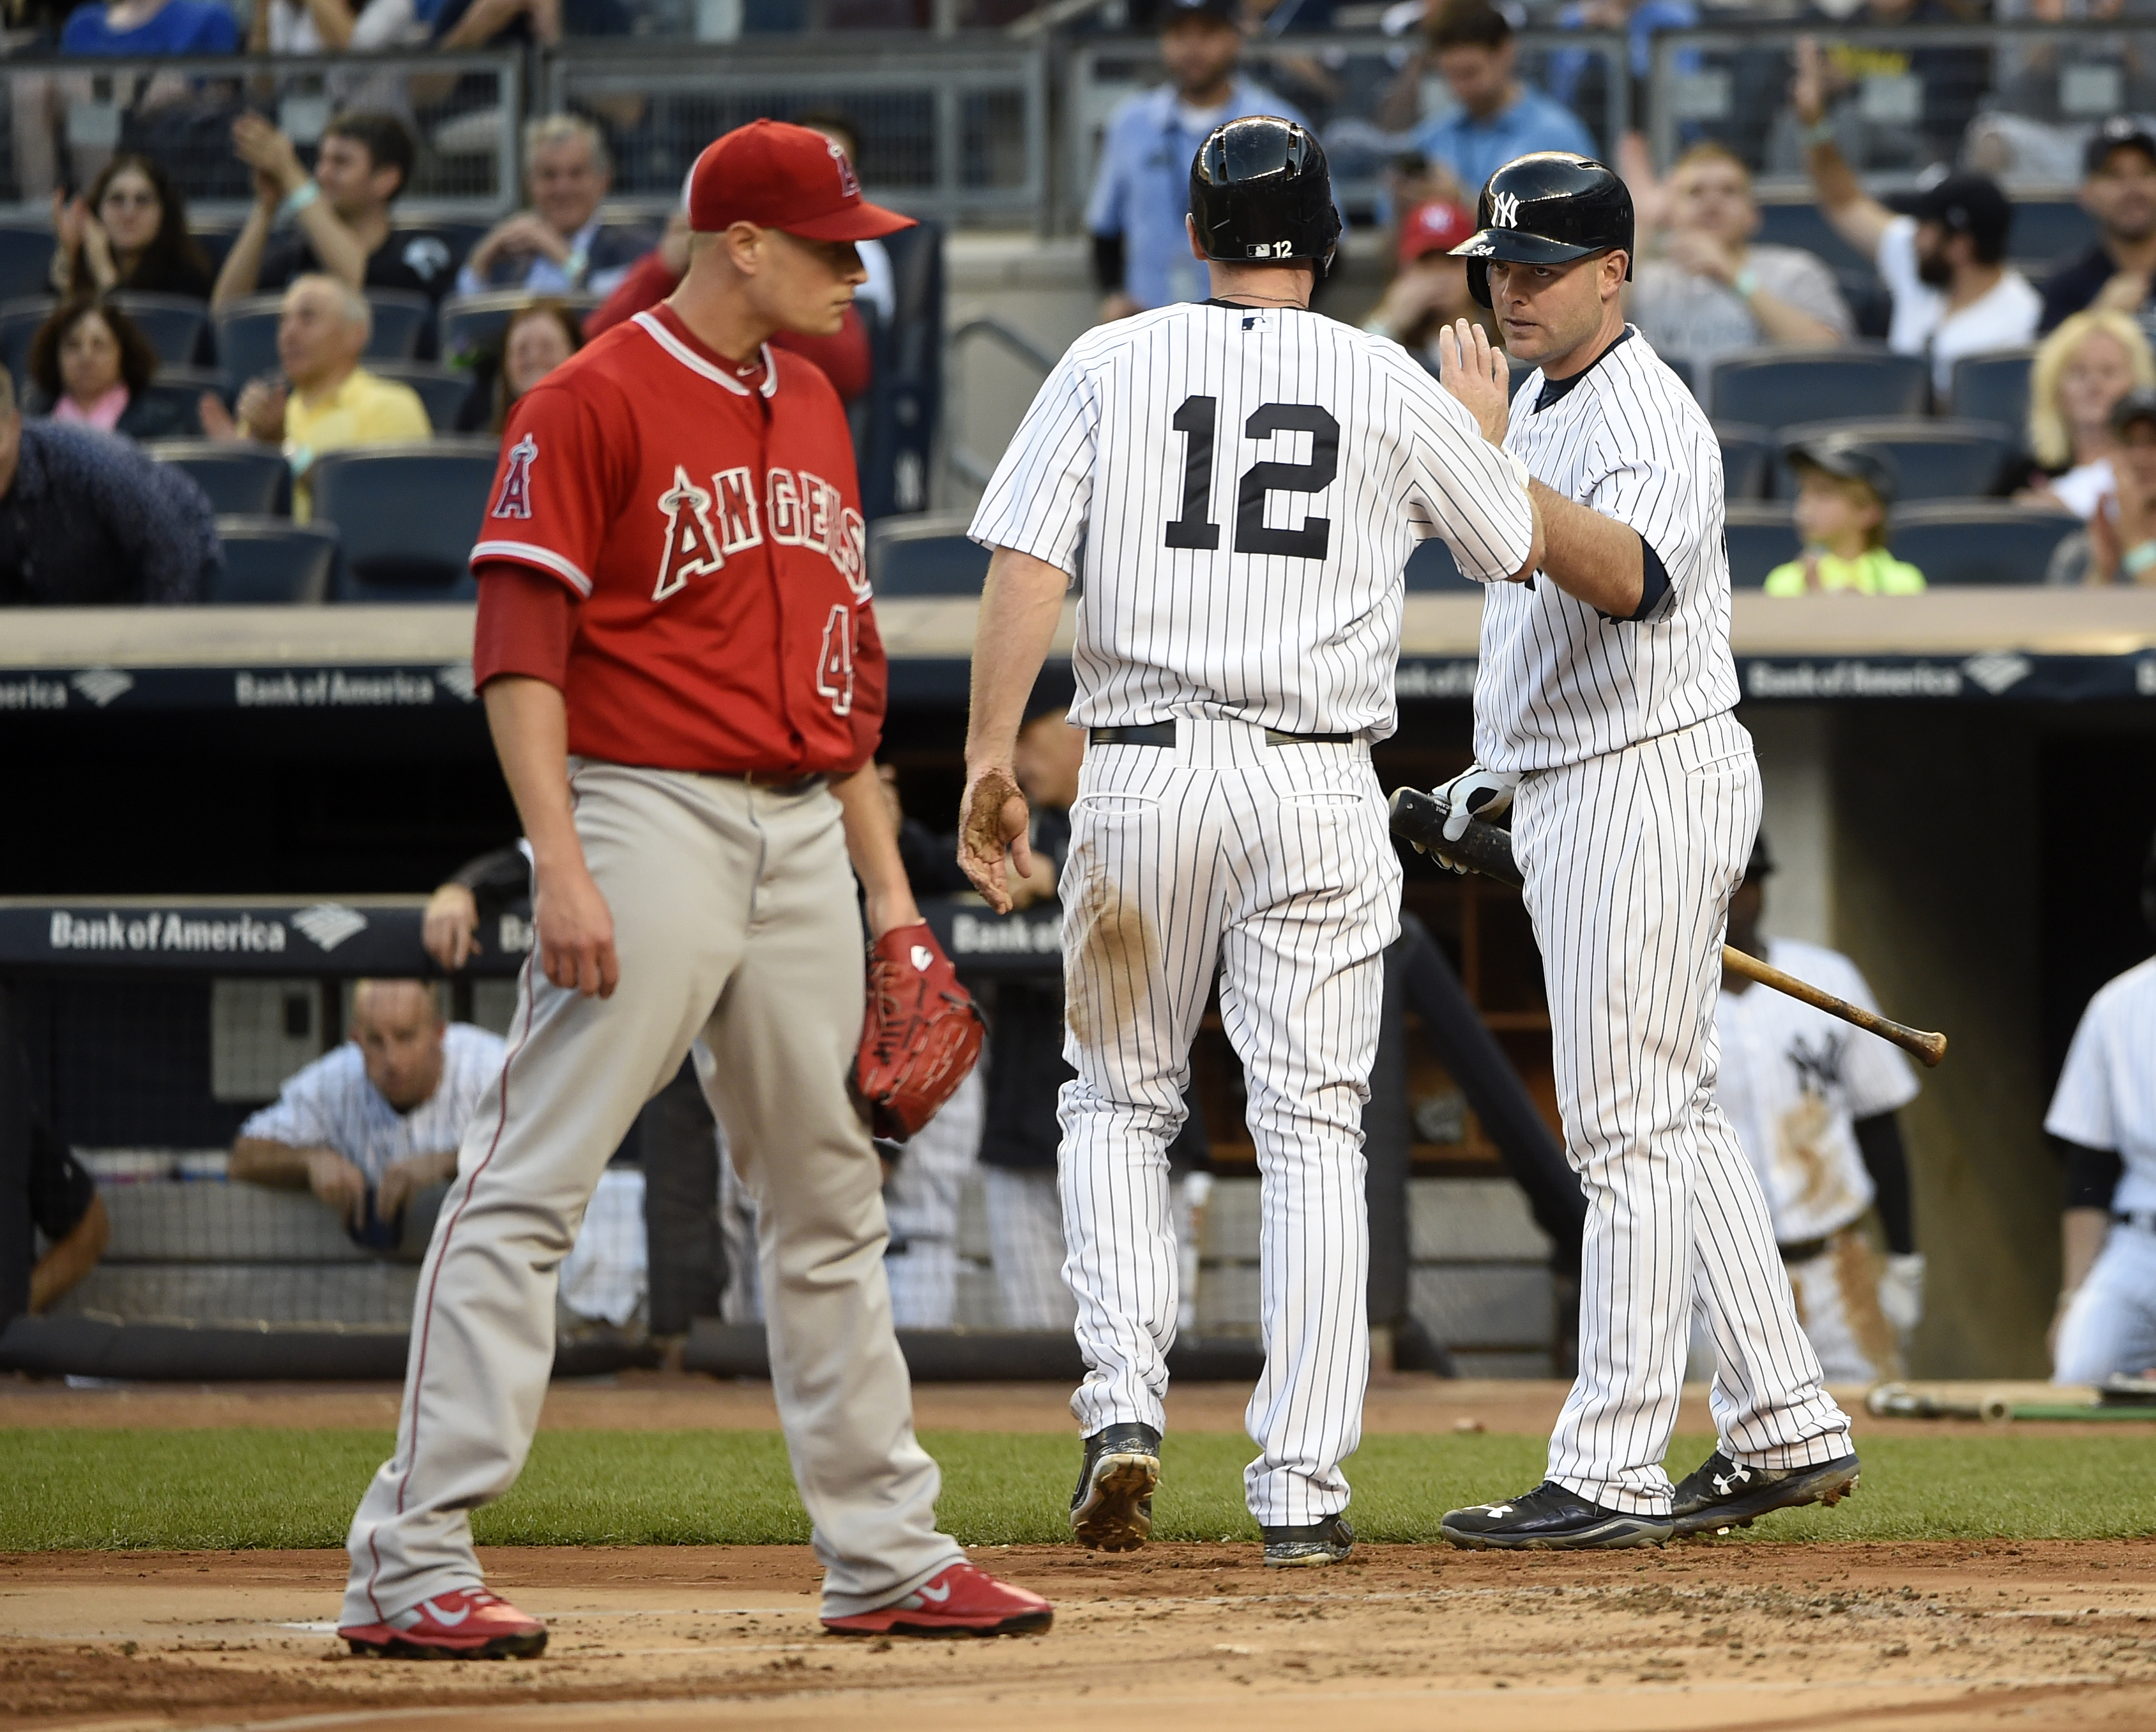 Los Angeles Angels starting pitcher Garrett Richards reacts at home plate as New York Yankees' Chase Headley (12) is greeted by Brian McCann after Headley scored on a wild pitch in the first inning of a baseball game at Yankee Stadium on Saturday, June 6,